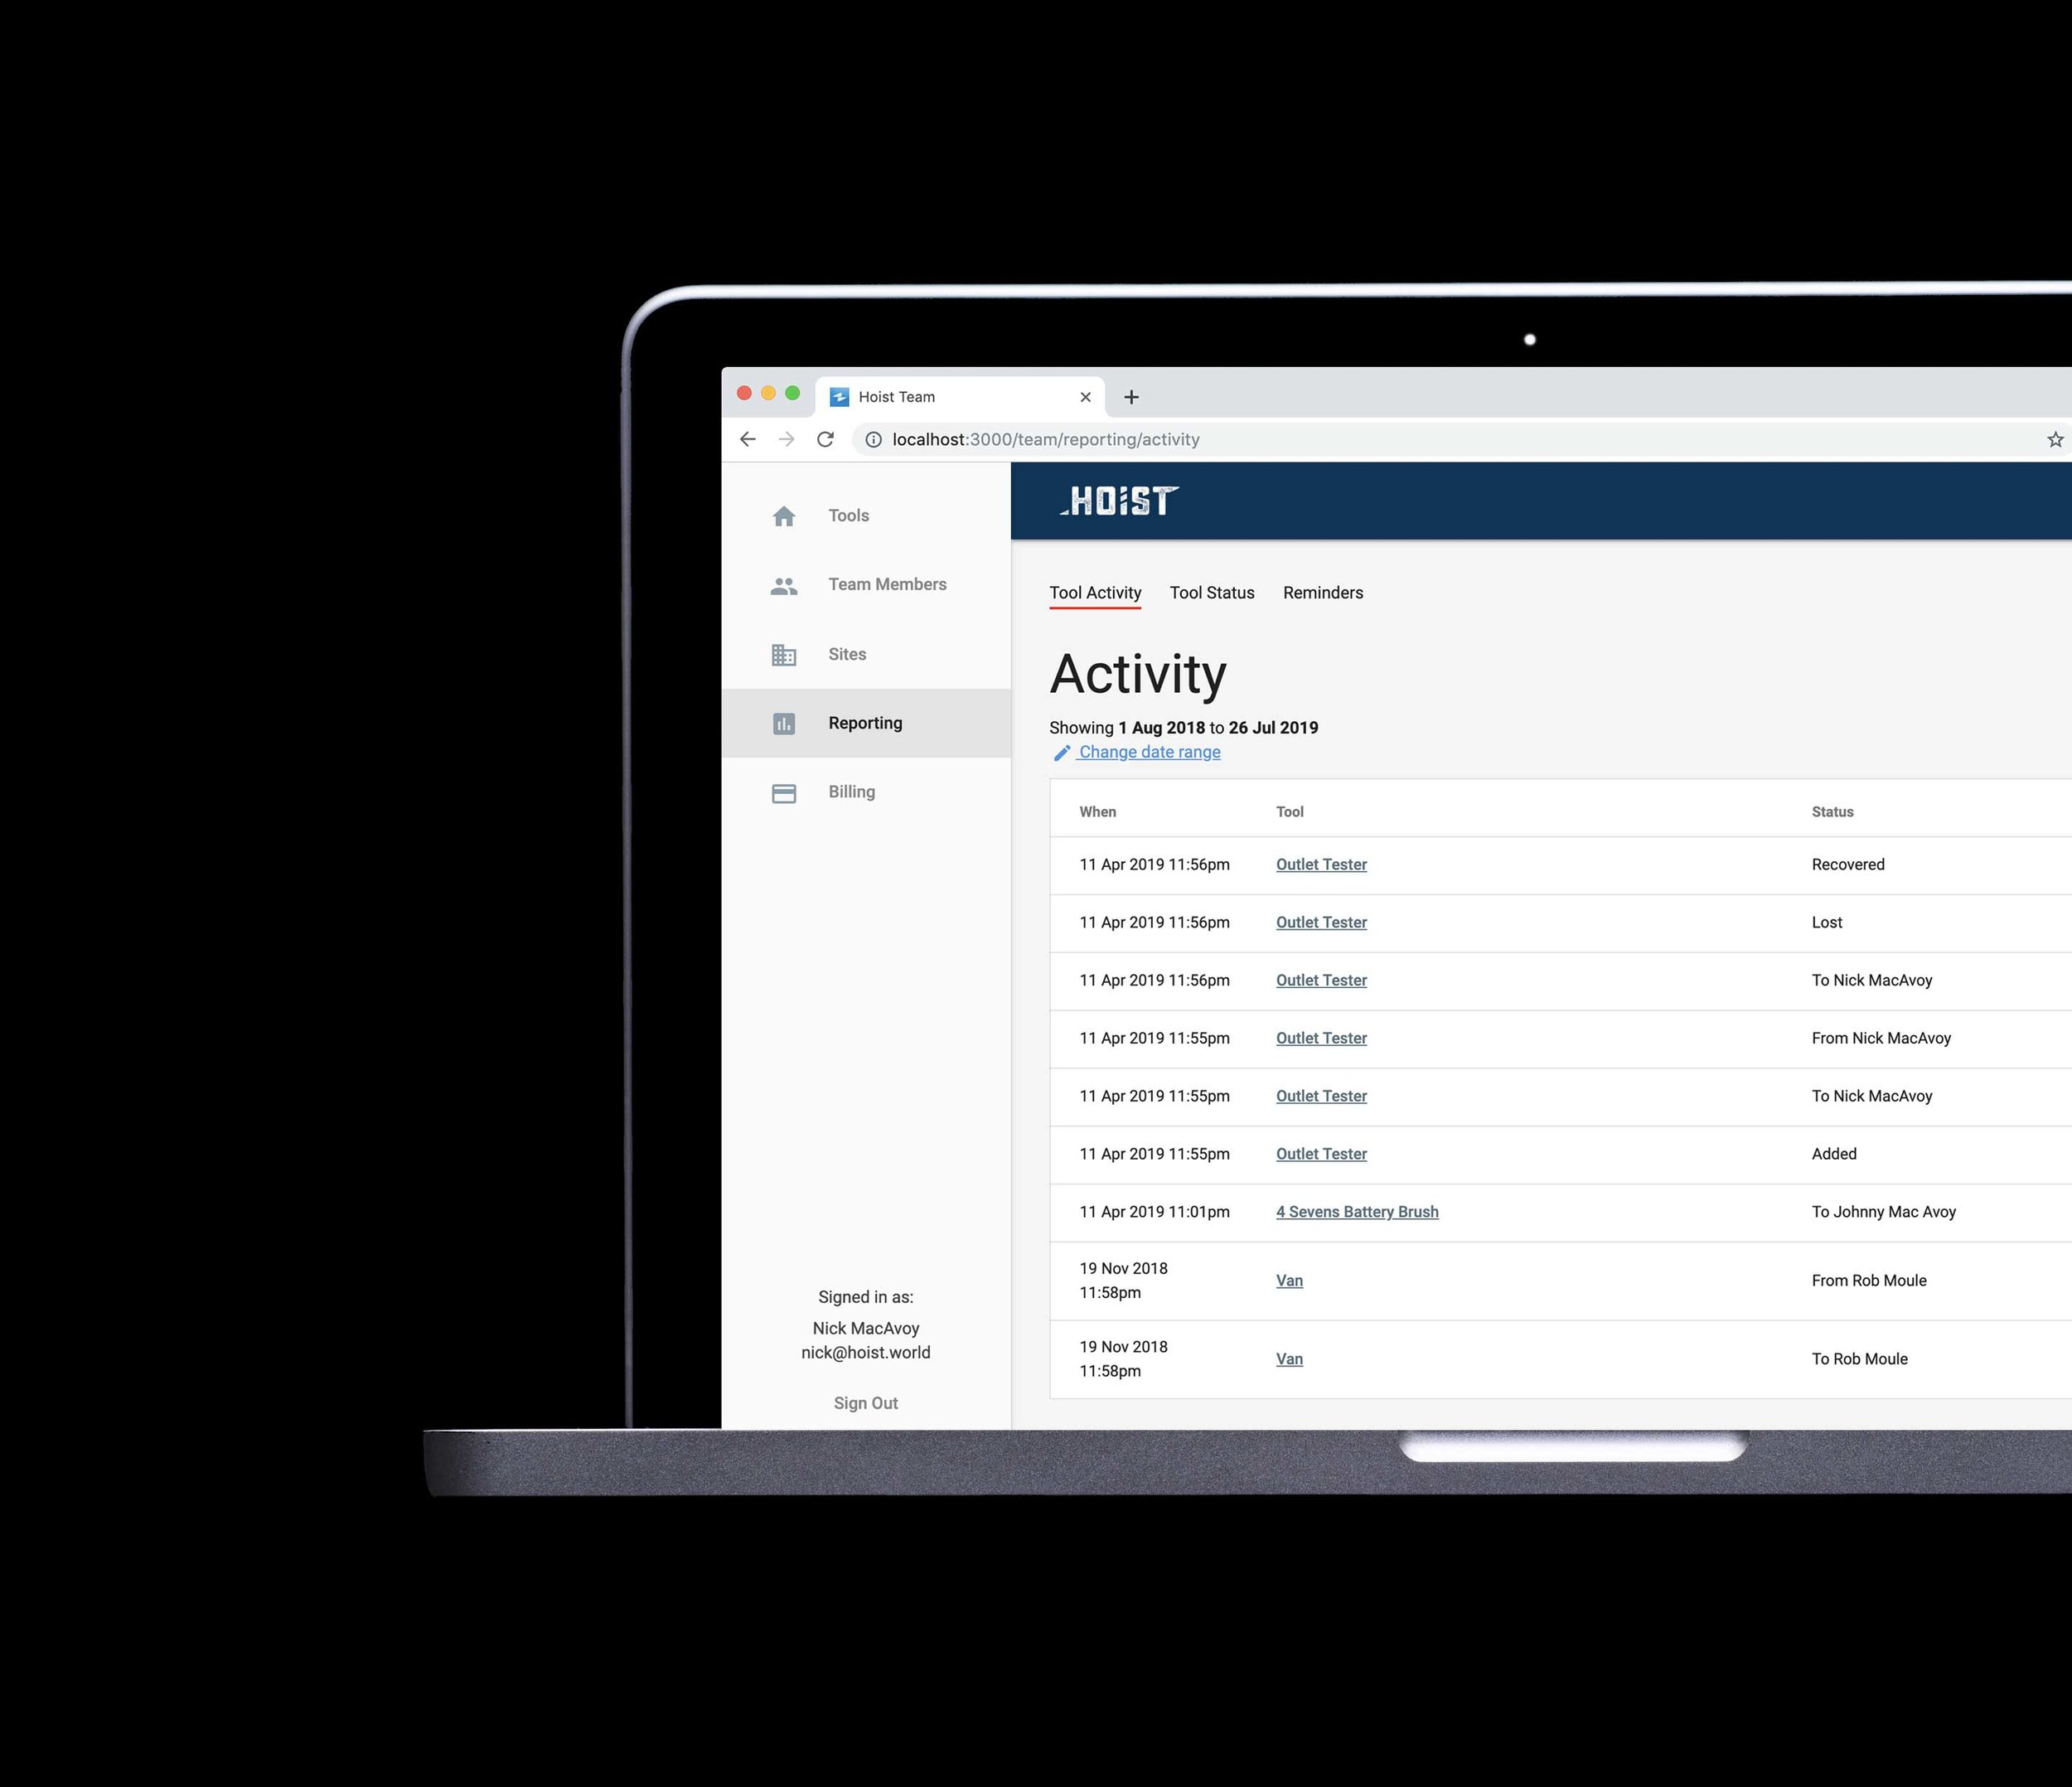 reportingmade easy - Need to see what assets have been damaged this year? Need to find out in an instant where something is and who had it last?Then Hoist Pro® has your sorted with everything from from CSV data exports to real-time activity tracking of every asset.